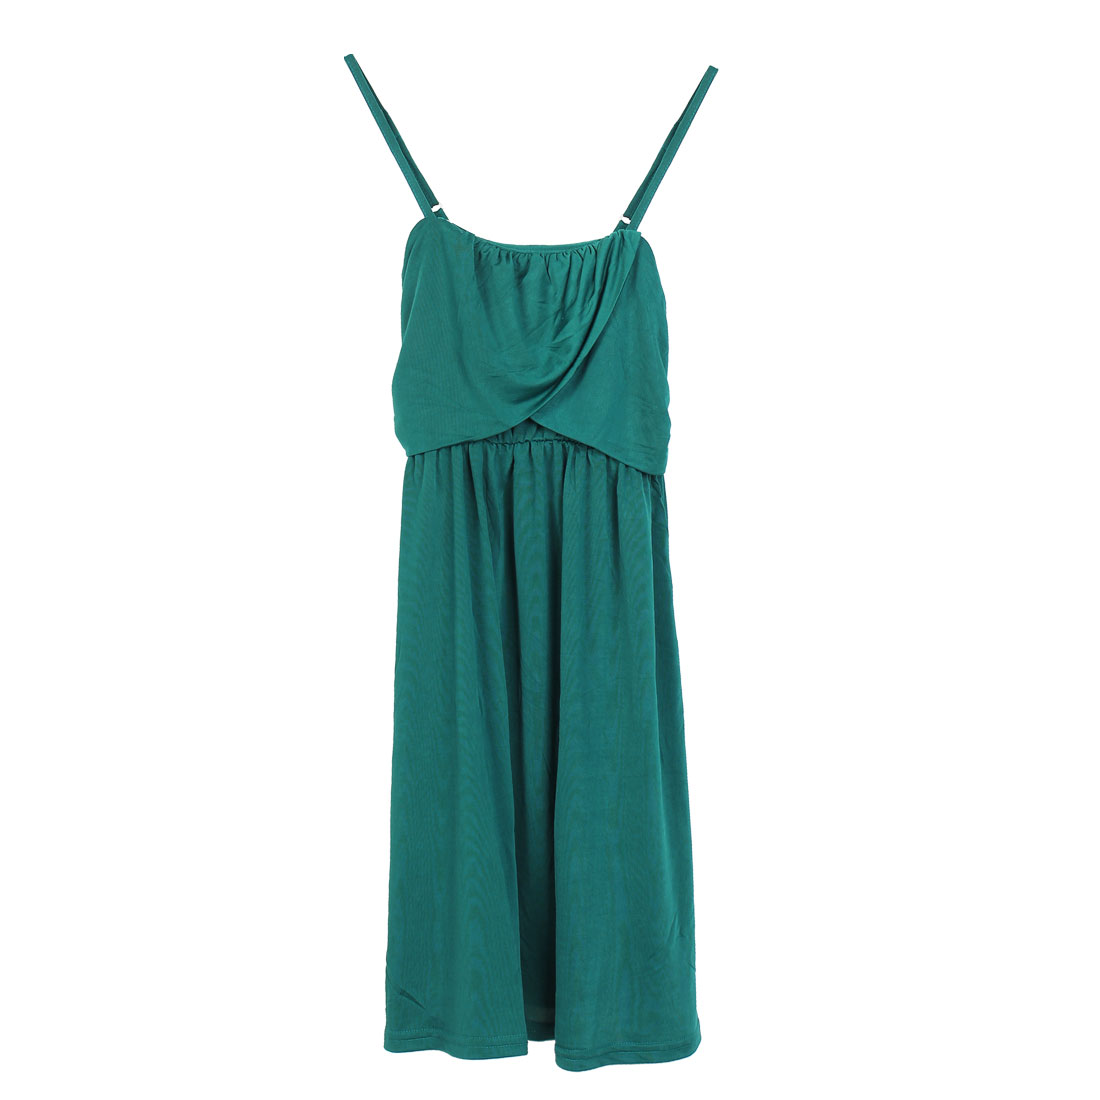 Ladies Green Front Cross Ruched Smooth Slip Skirt Dress XS